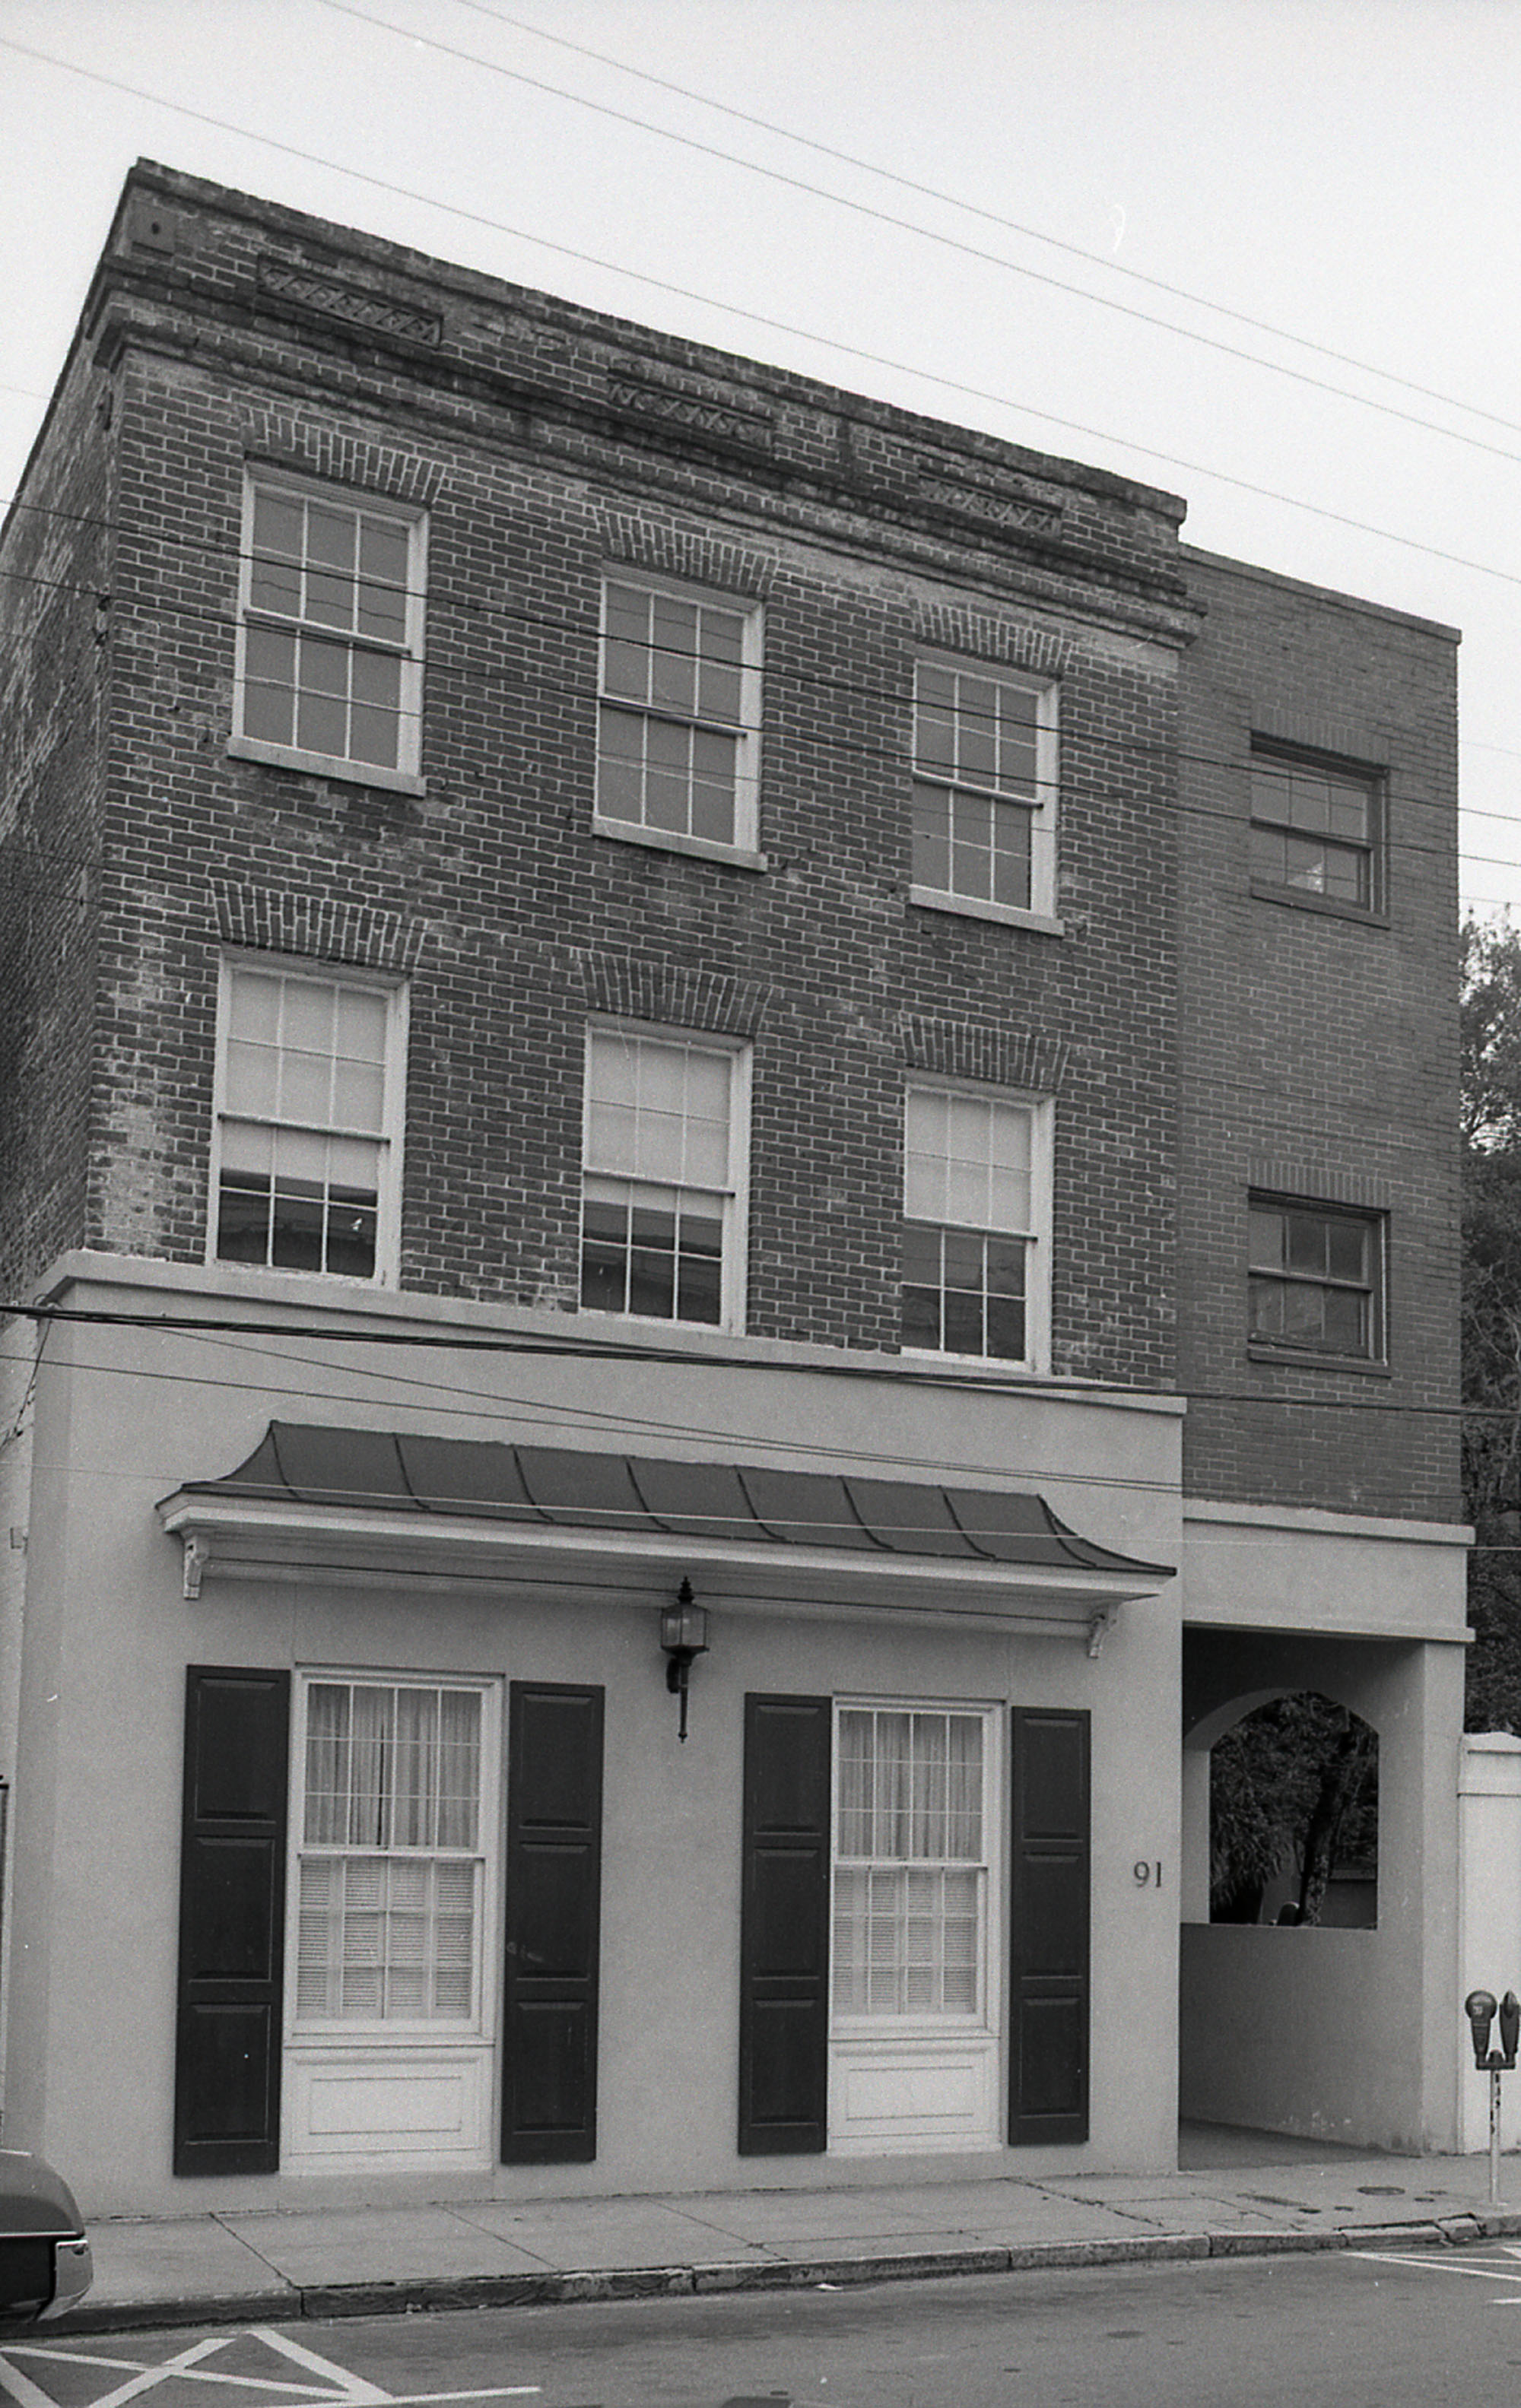 91 Hasell Street